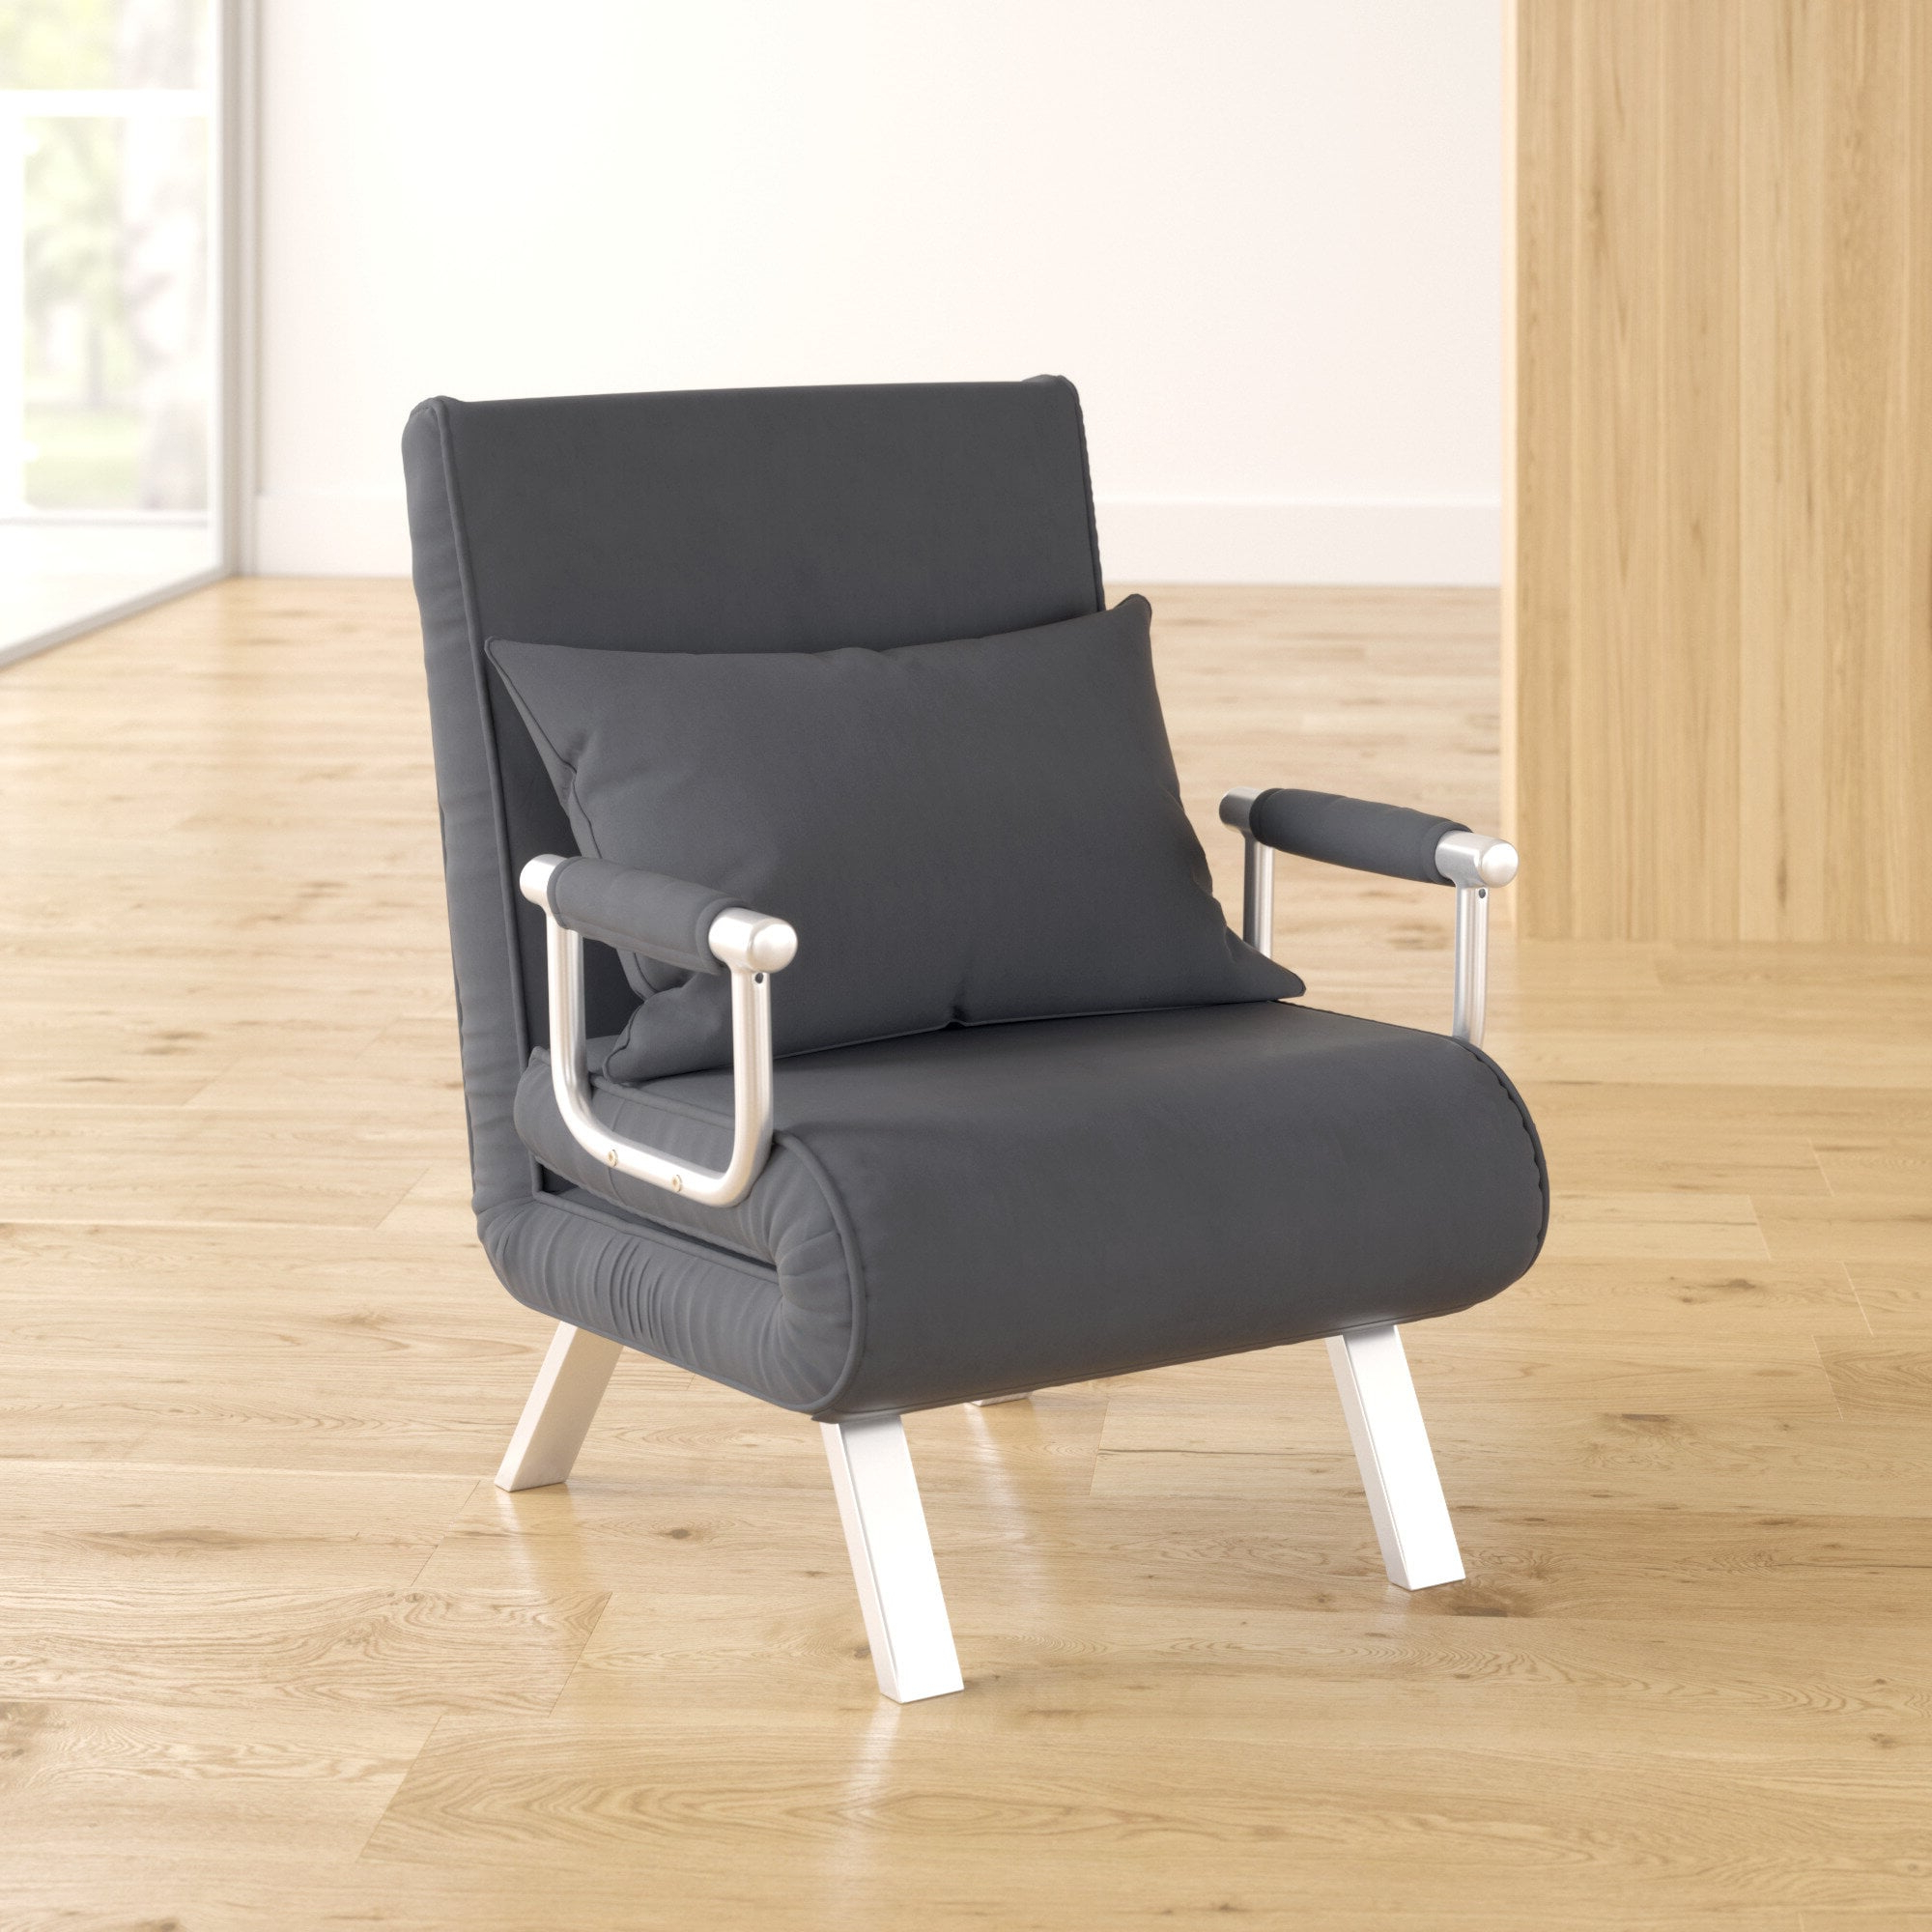 Bolen Convertible Chairs With Regard To Most Popular Space Saving Chairs That Turn Into Beds (View 11 of 20)